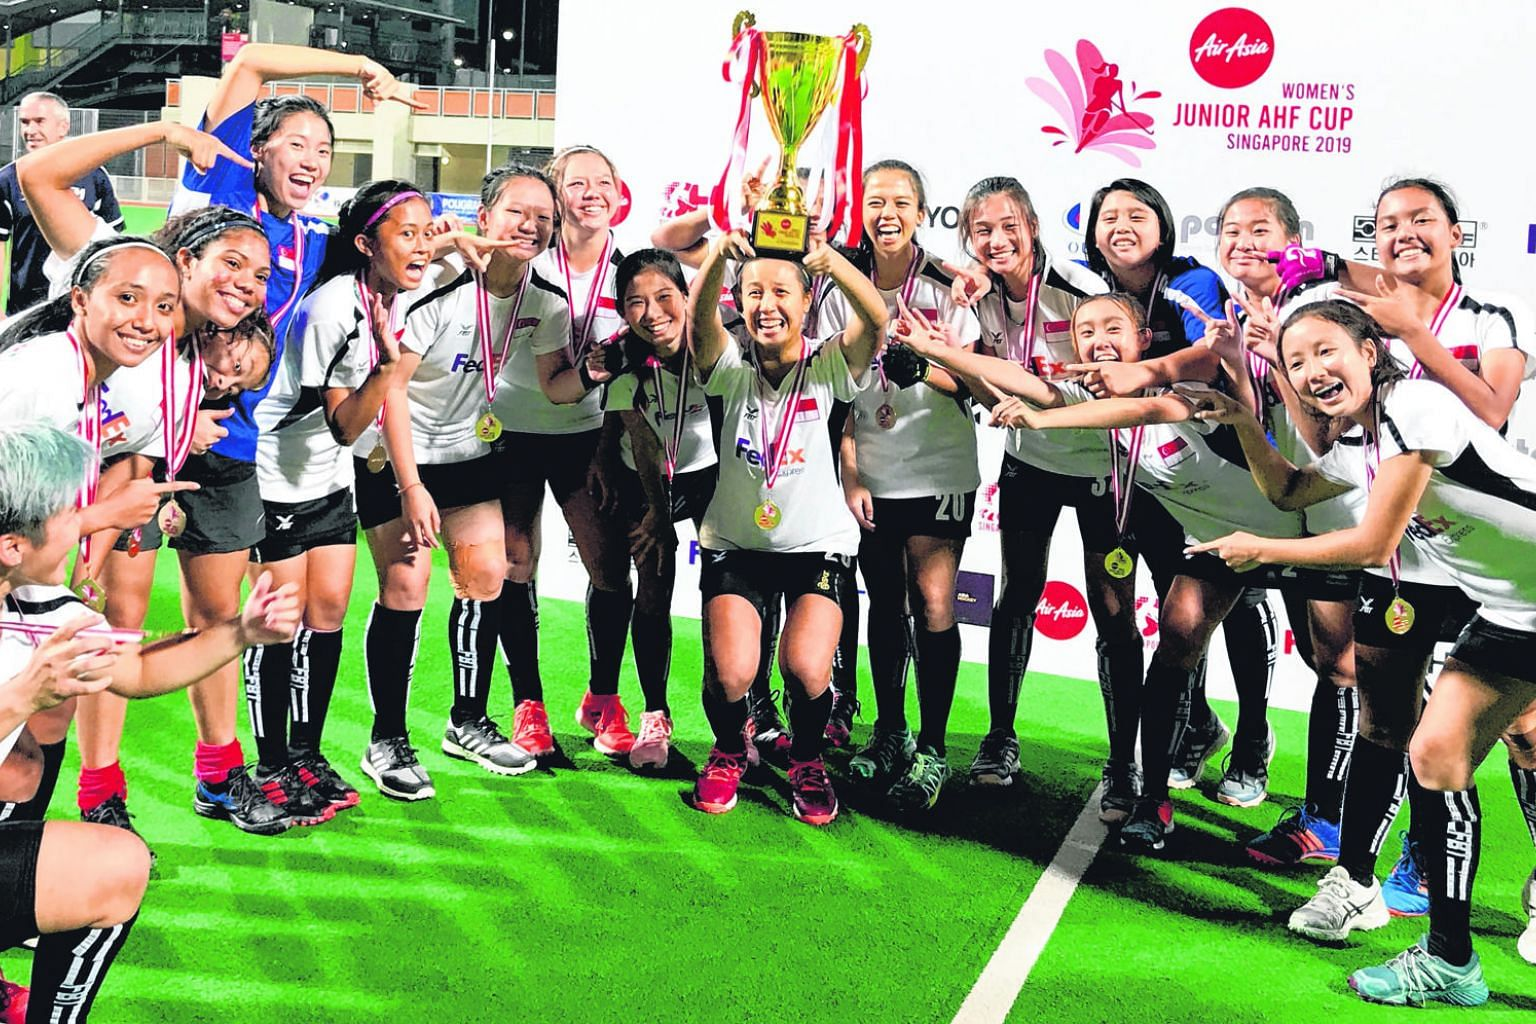 The victorious Singapore team, celebrating winning the Women's Junior AHF Cup at the Sengkang Hockey Stadium last week.